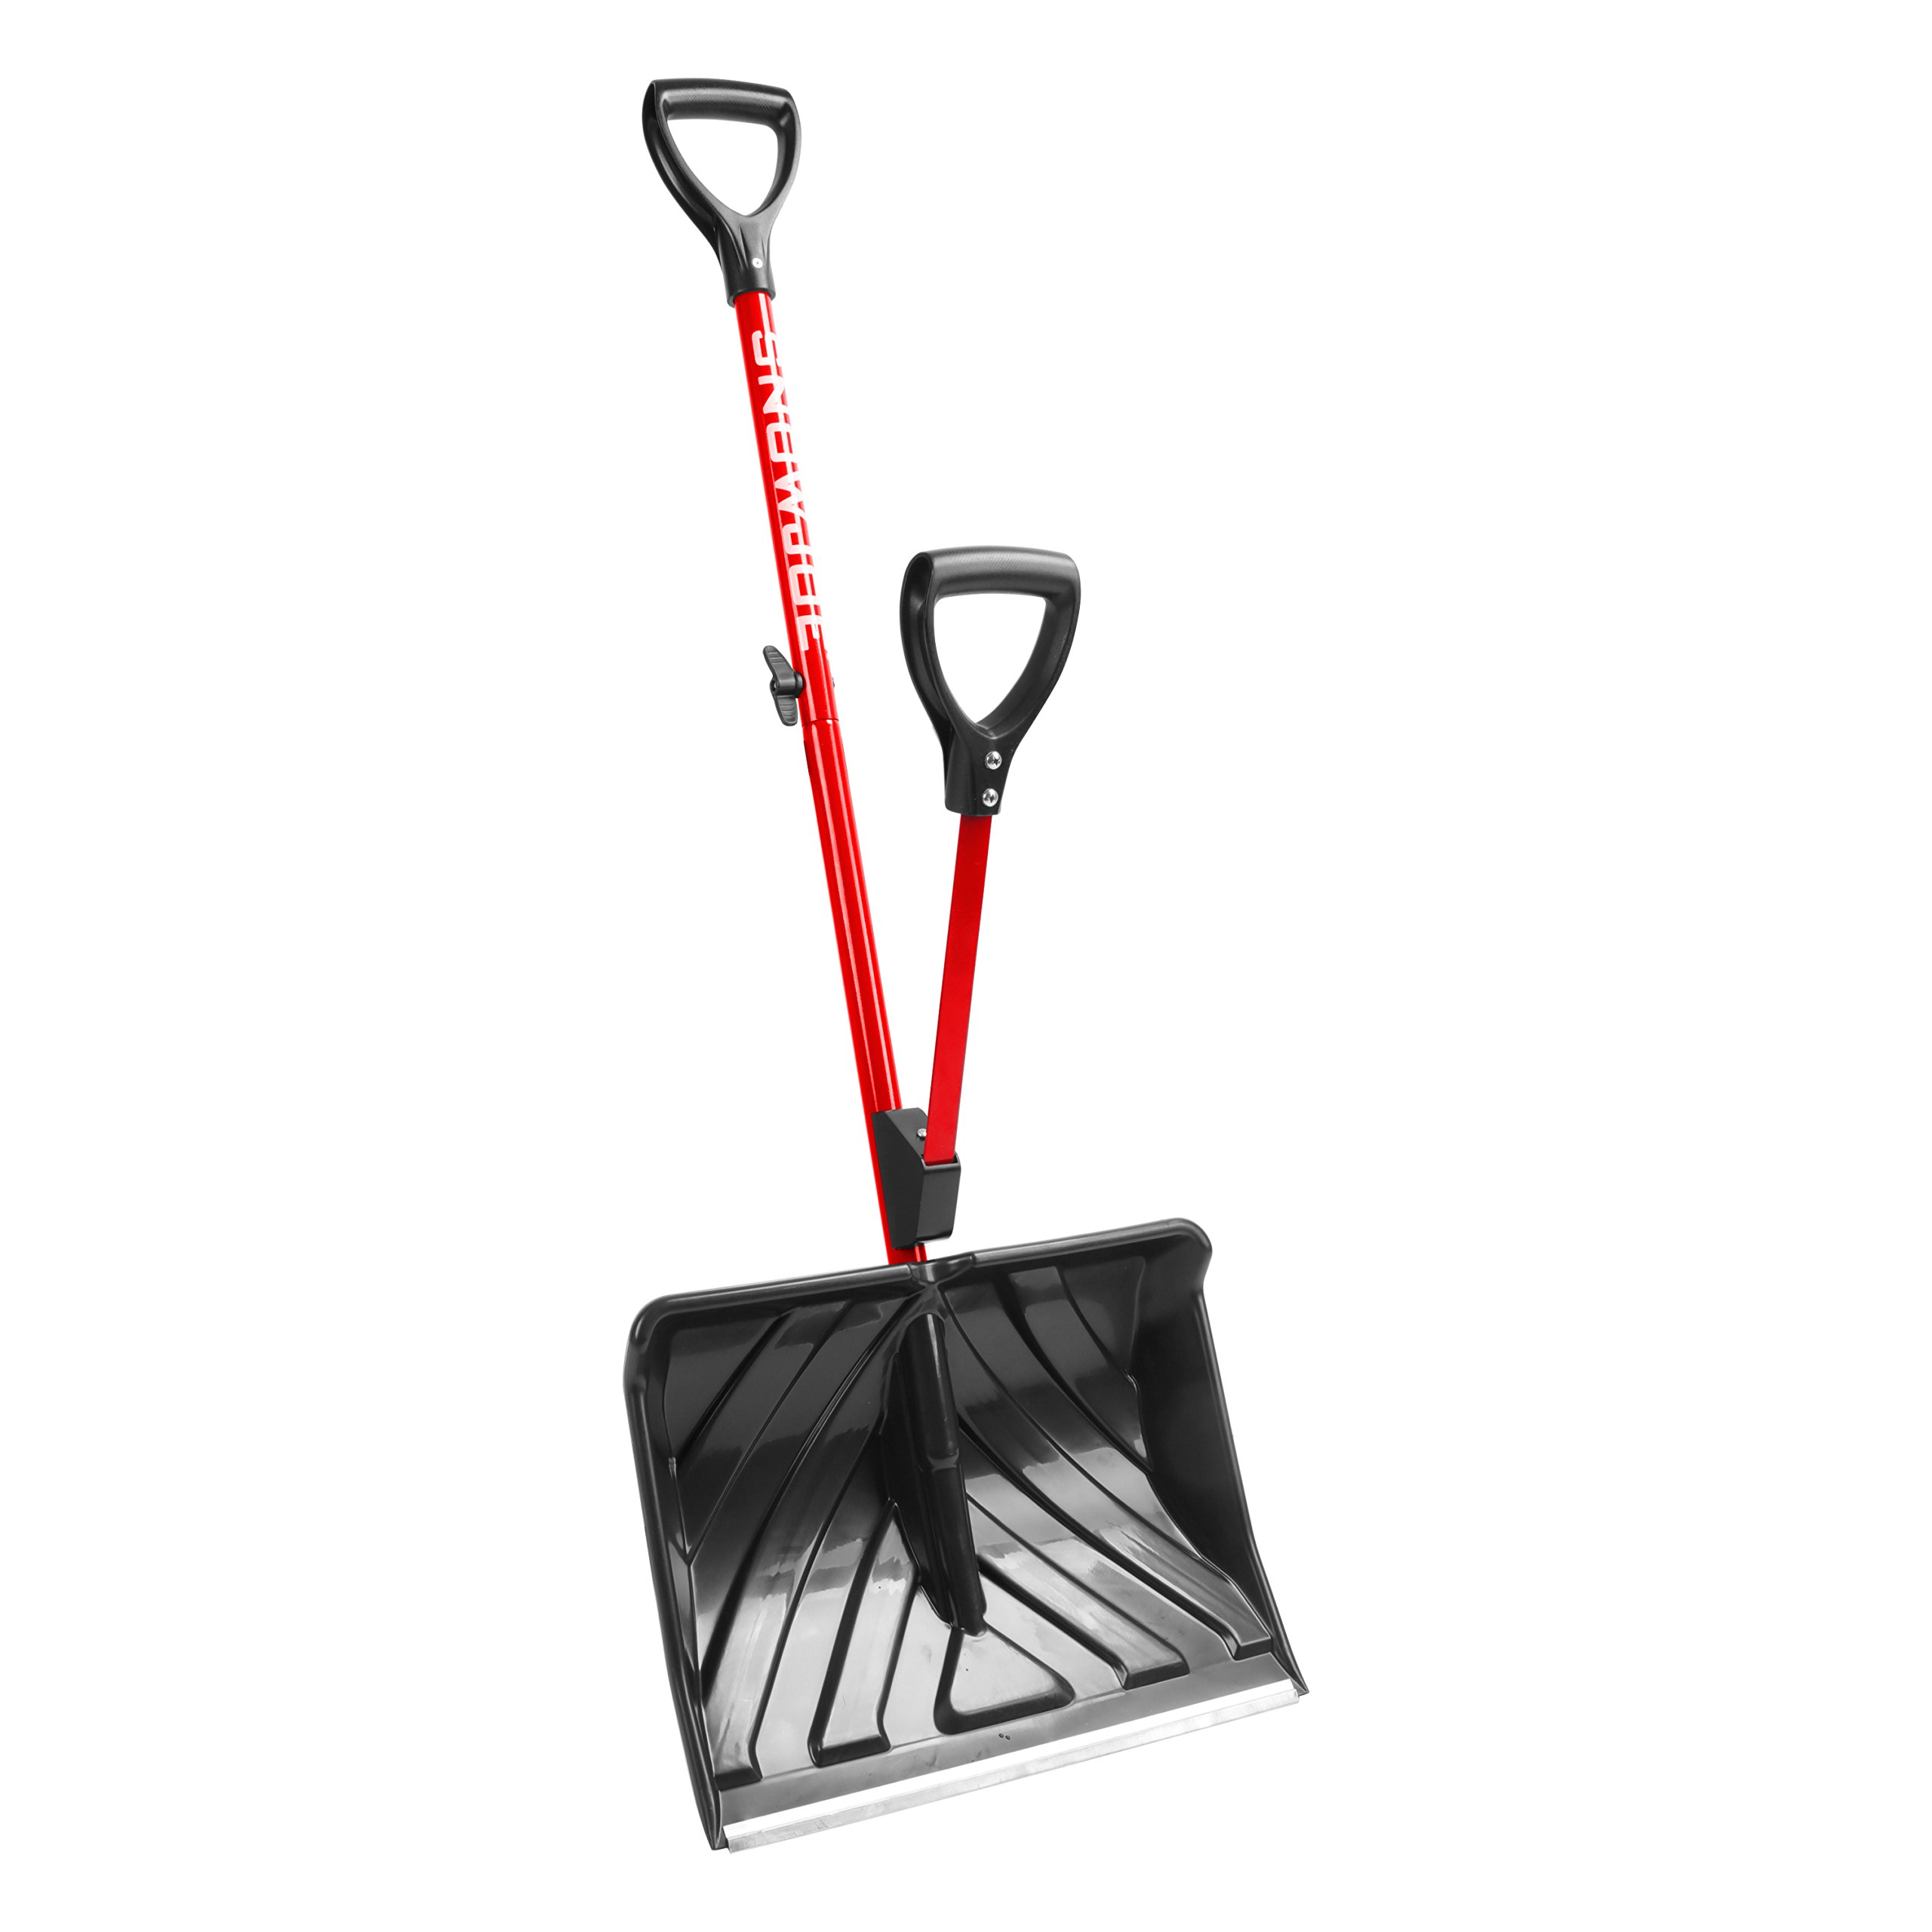 Snow Joe SHOVELUTION SJ-SHLV01-RED 18-IN Strain-Reducing Snow Shovel w/Spring Assisted Handle, Red (Certified Refurbished)